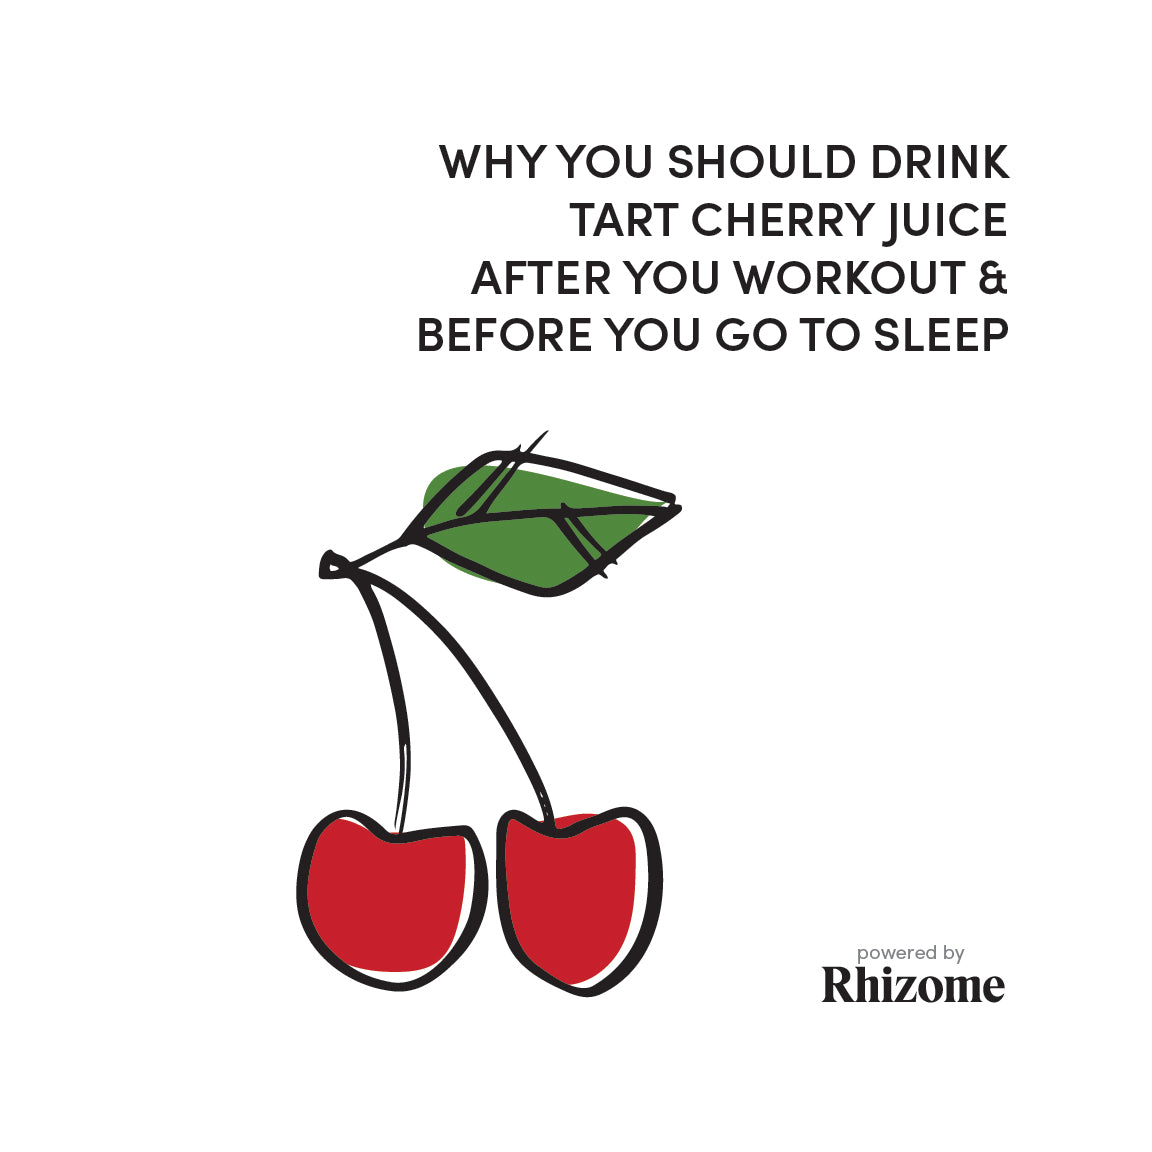 Why You Should Drink Tart Cherry Juice After You Workout And Before You Go To Sleep